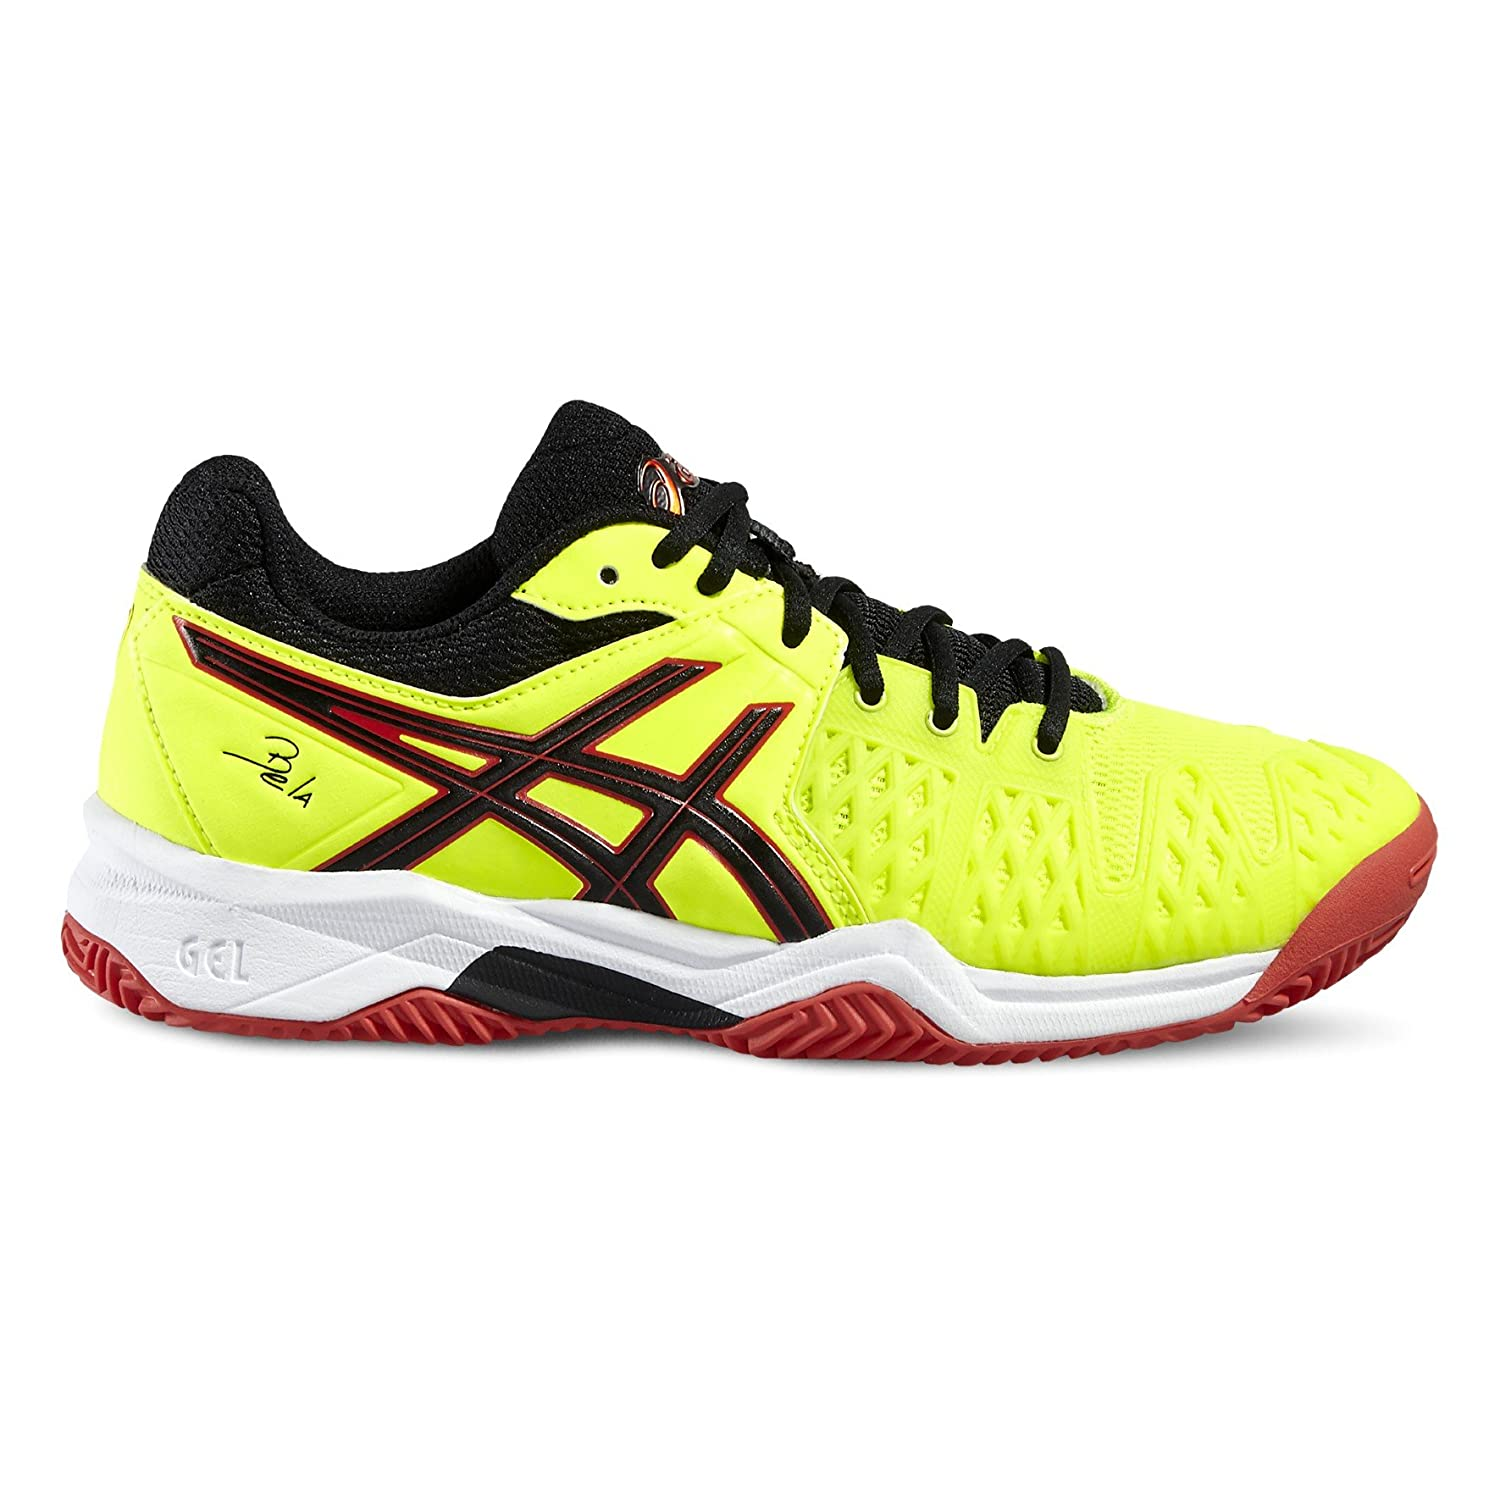 Gel Bela 5 SG GS C504Y Color 0790-37.5: Amazon.es: Deportes y aire ...